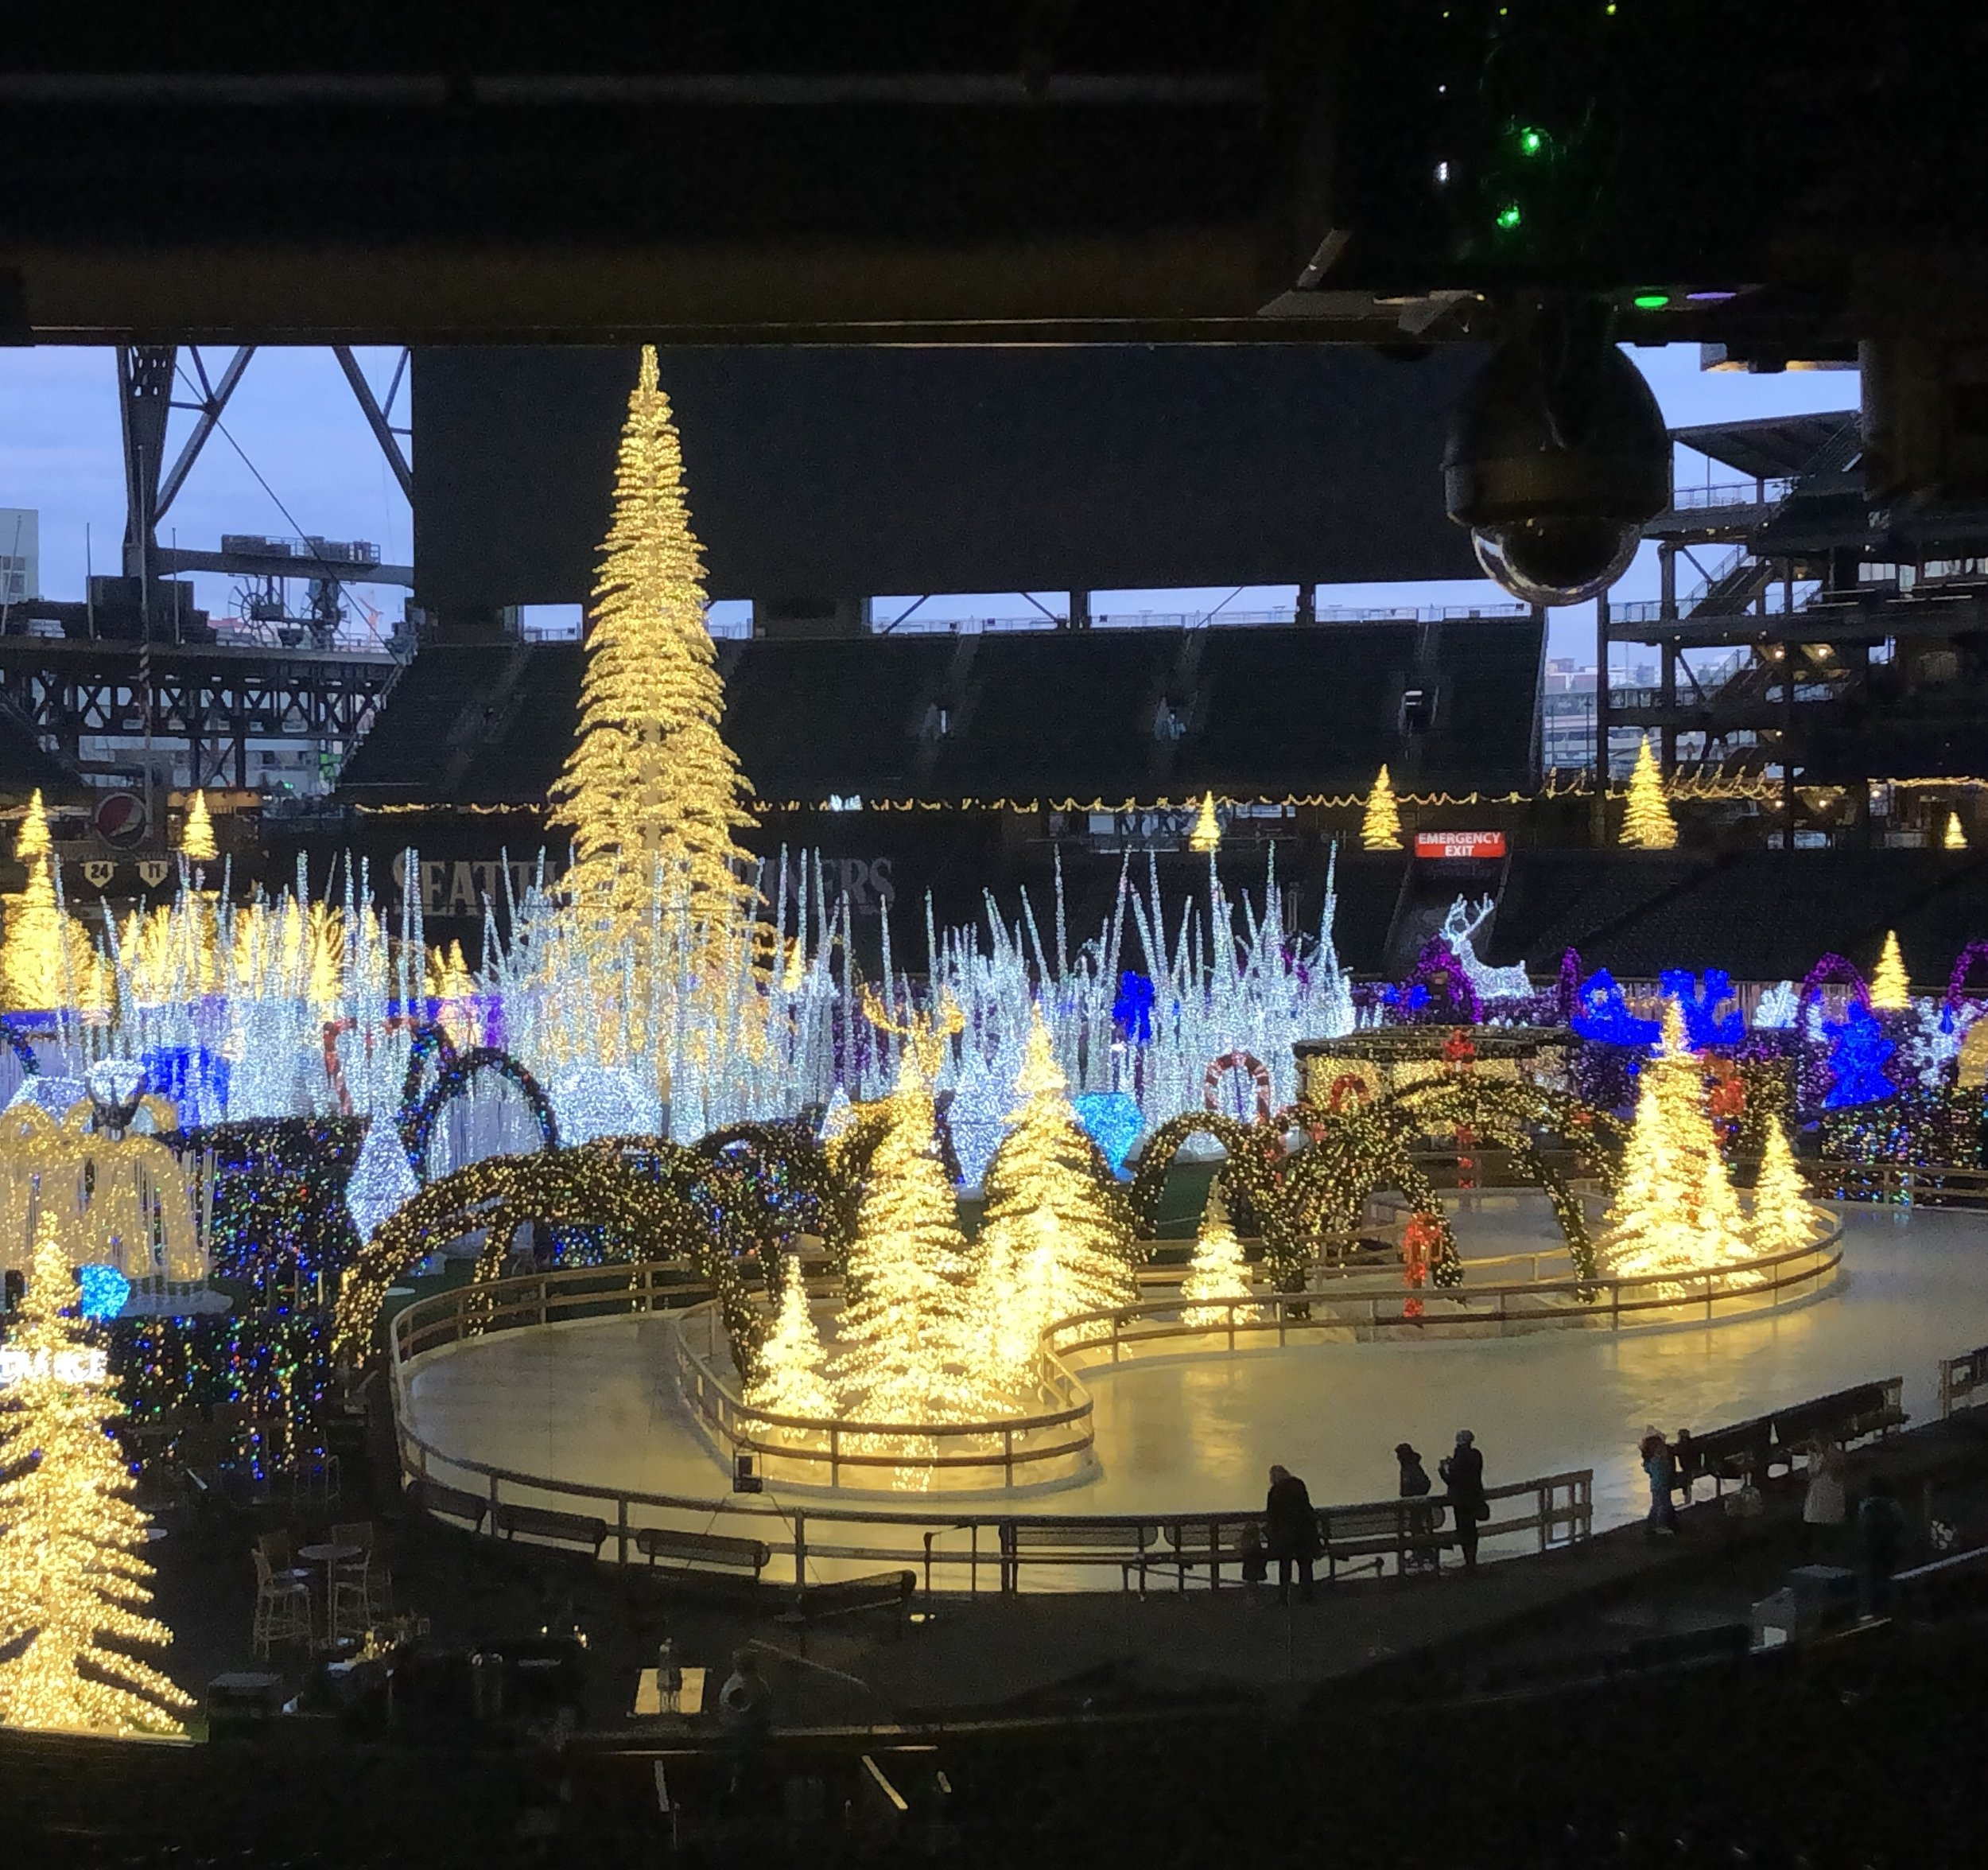 The light-filled ice rink